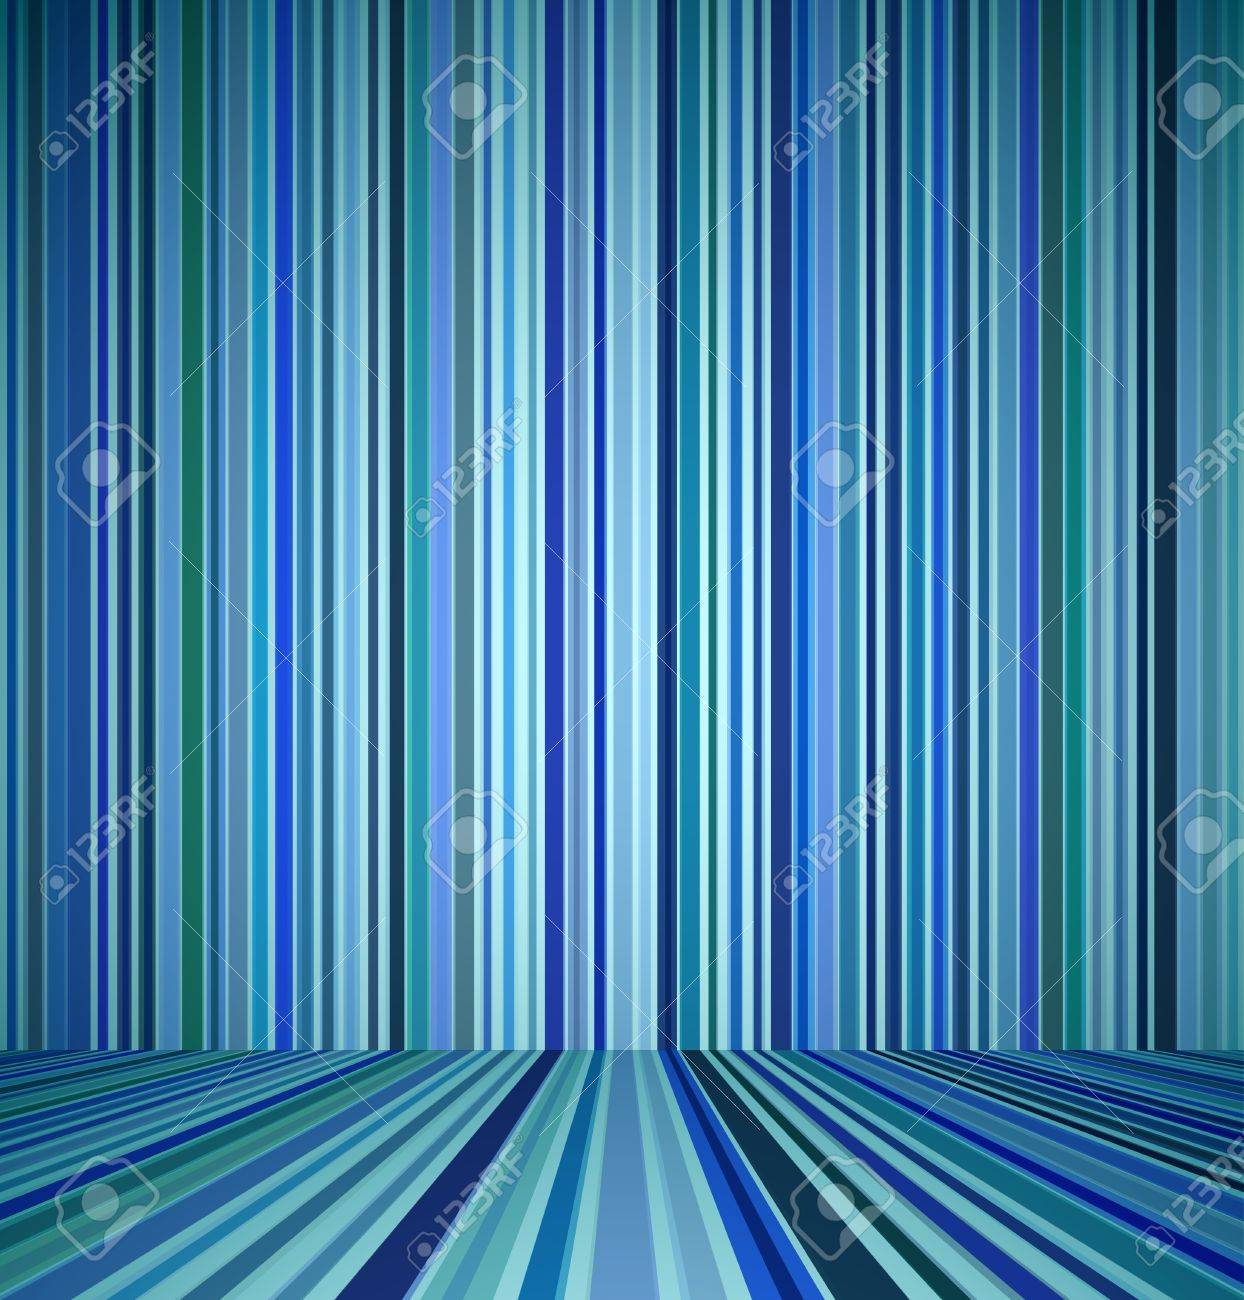 Blue empty room with striped wall and striped floor interior. Vector illustration Stock Vector - 18386879